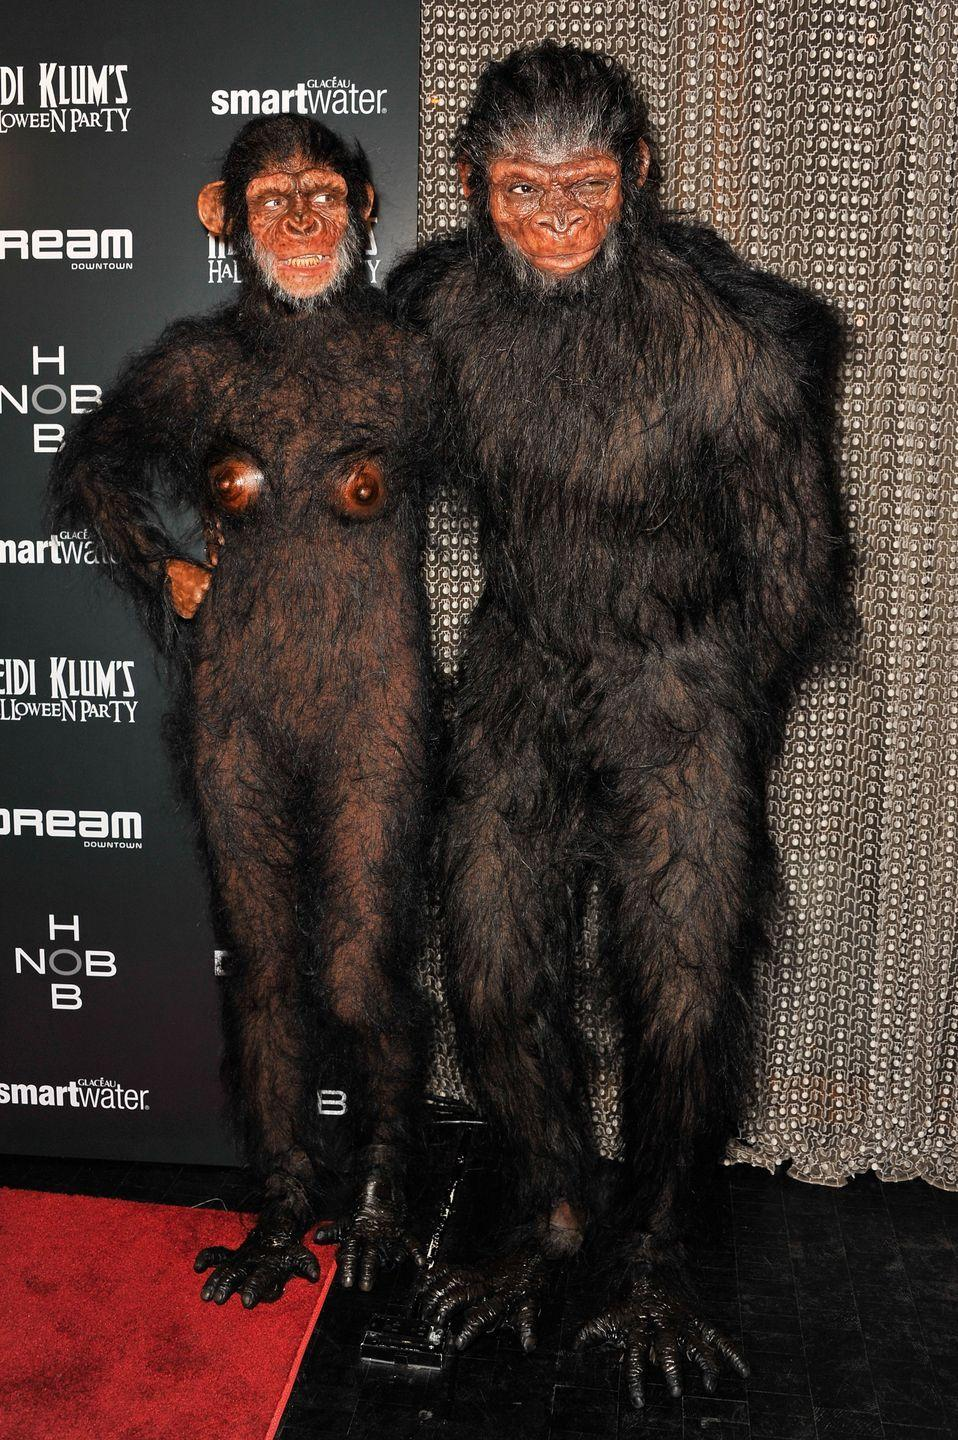 <p>In 2011, Heidi and Seal dressed up as apes for her second Halloween party that year. It reportedly took nearly six hours to apply the star's make-up, including Heidi's fake breasts.</p><p>You know, just super casual...</p>